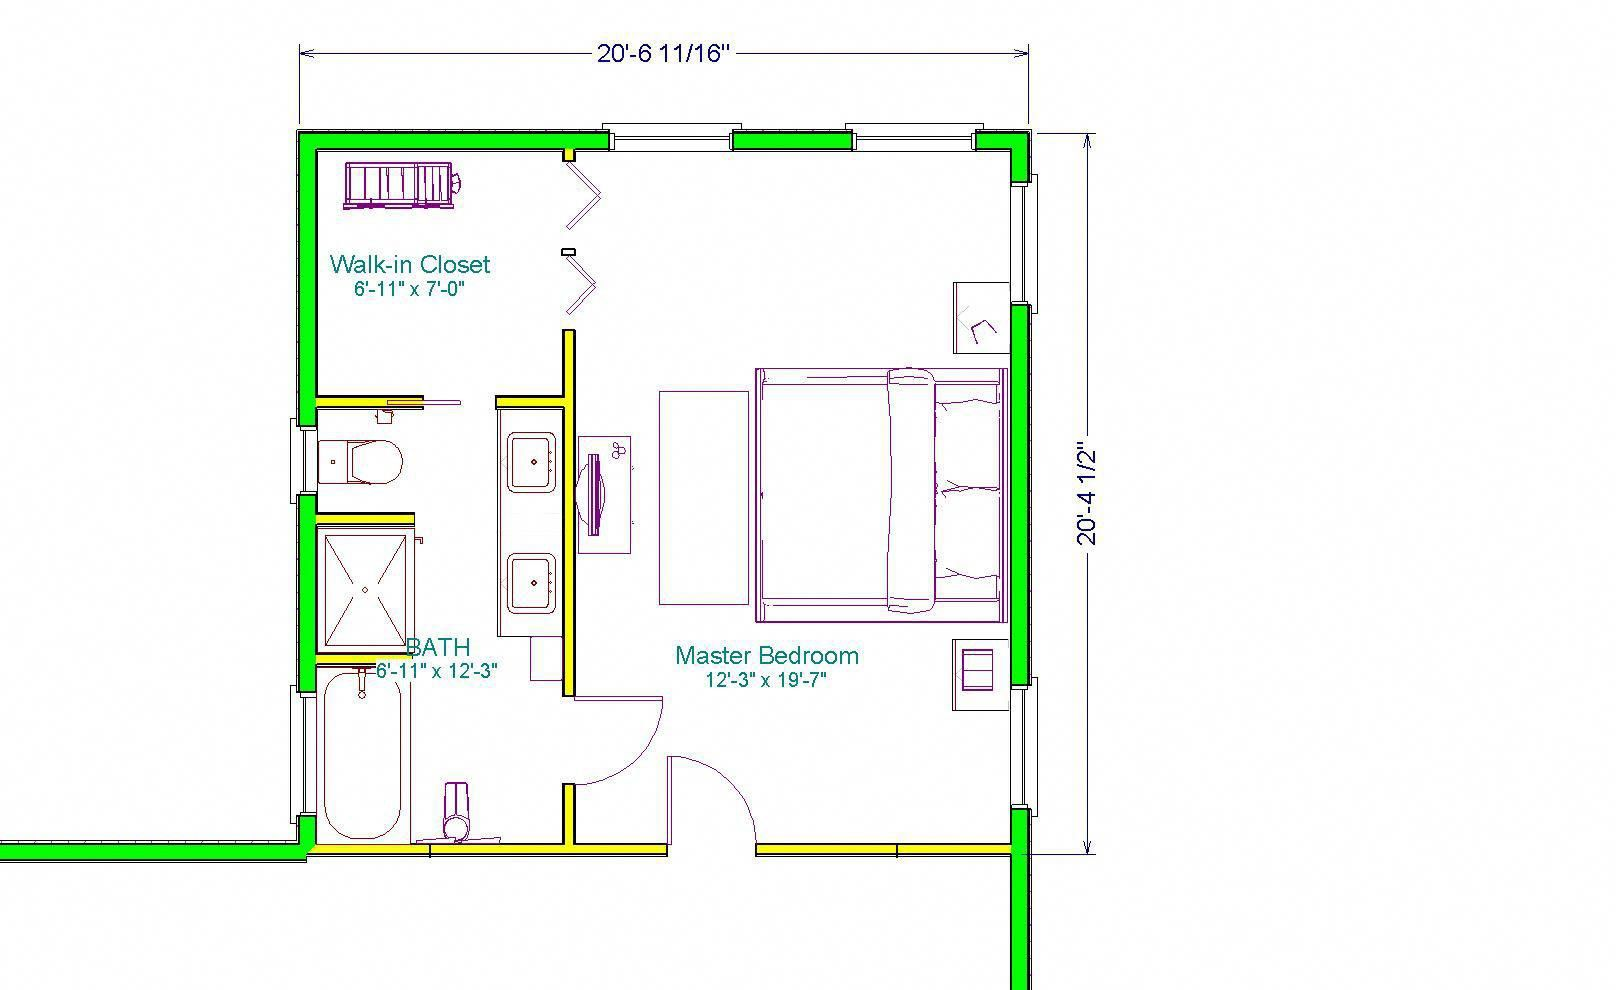 Master Suite Plans With Dimensions Out Master Suite Addition This 20 X 20 Master Suite Master Suite Floor Plan Master Bedroom Layout Master Bedroom Plans